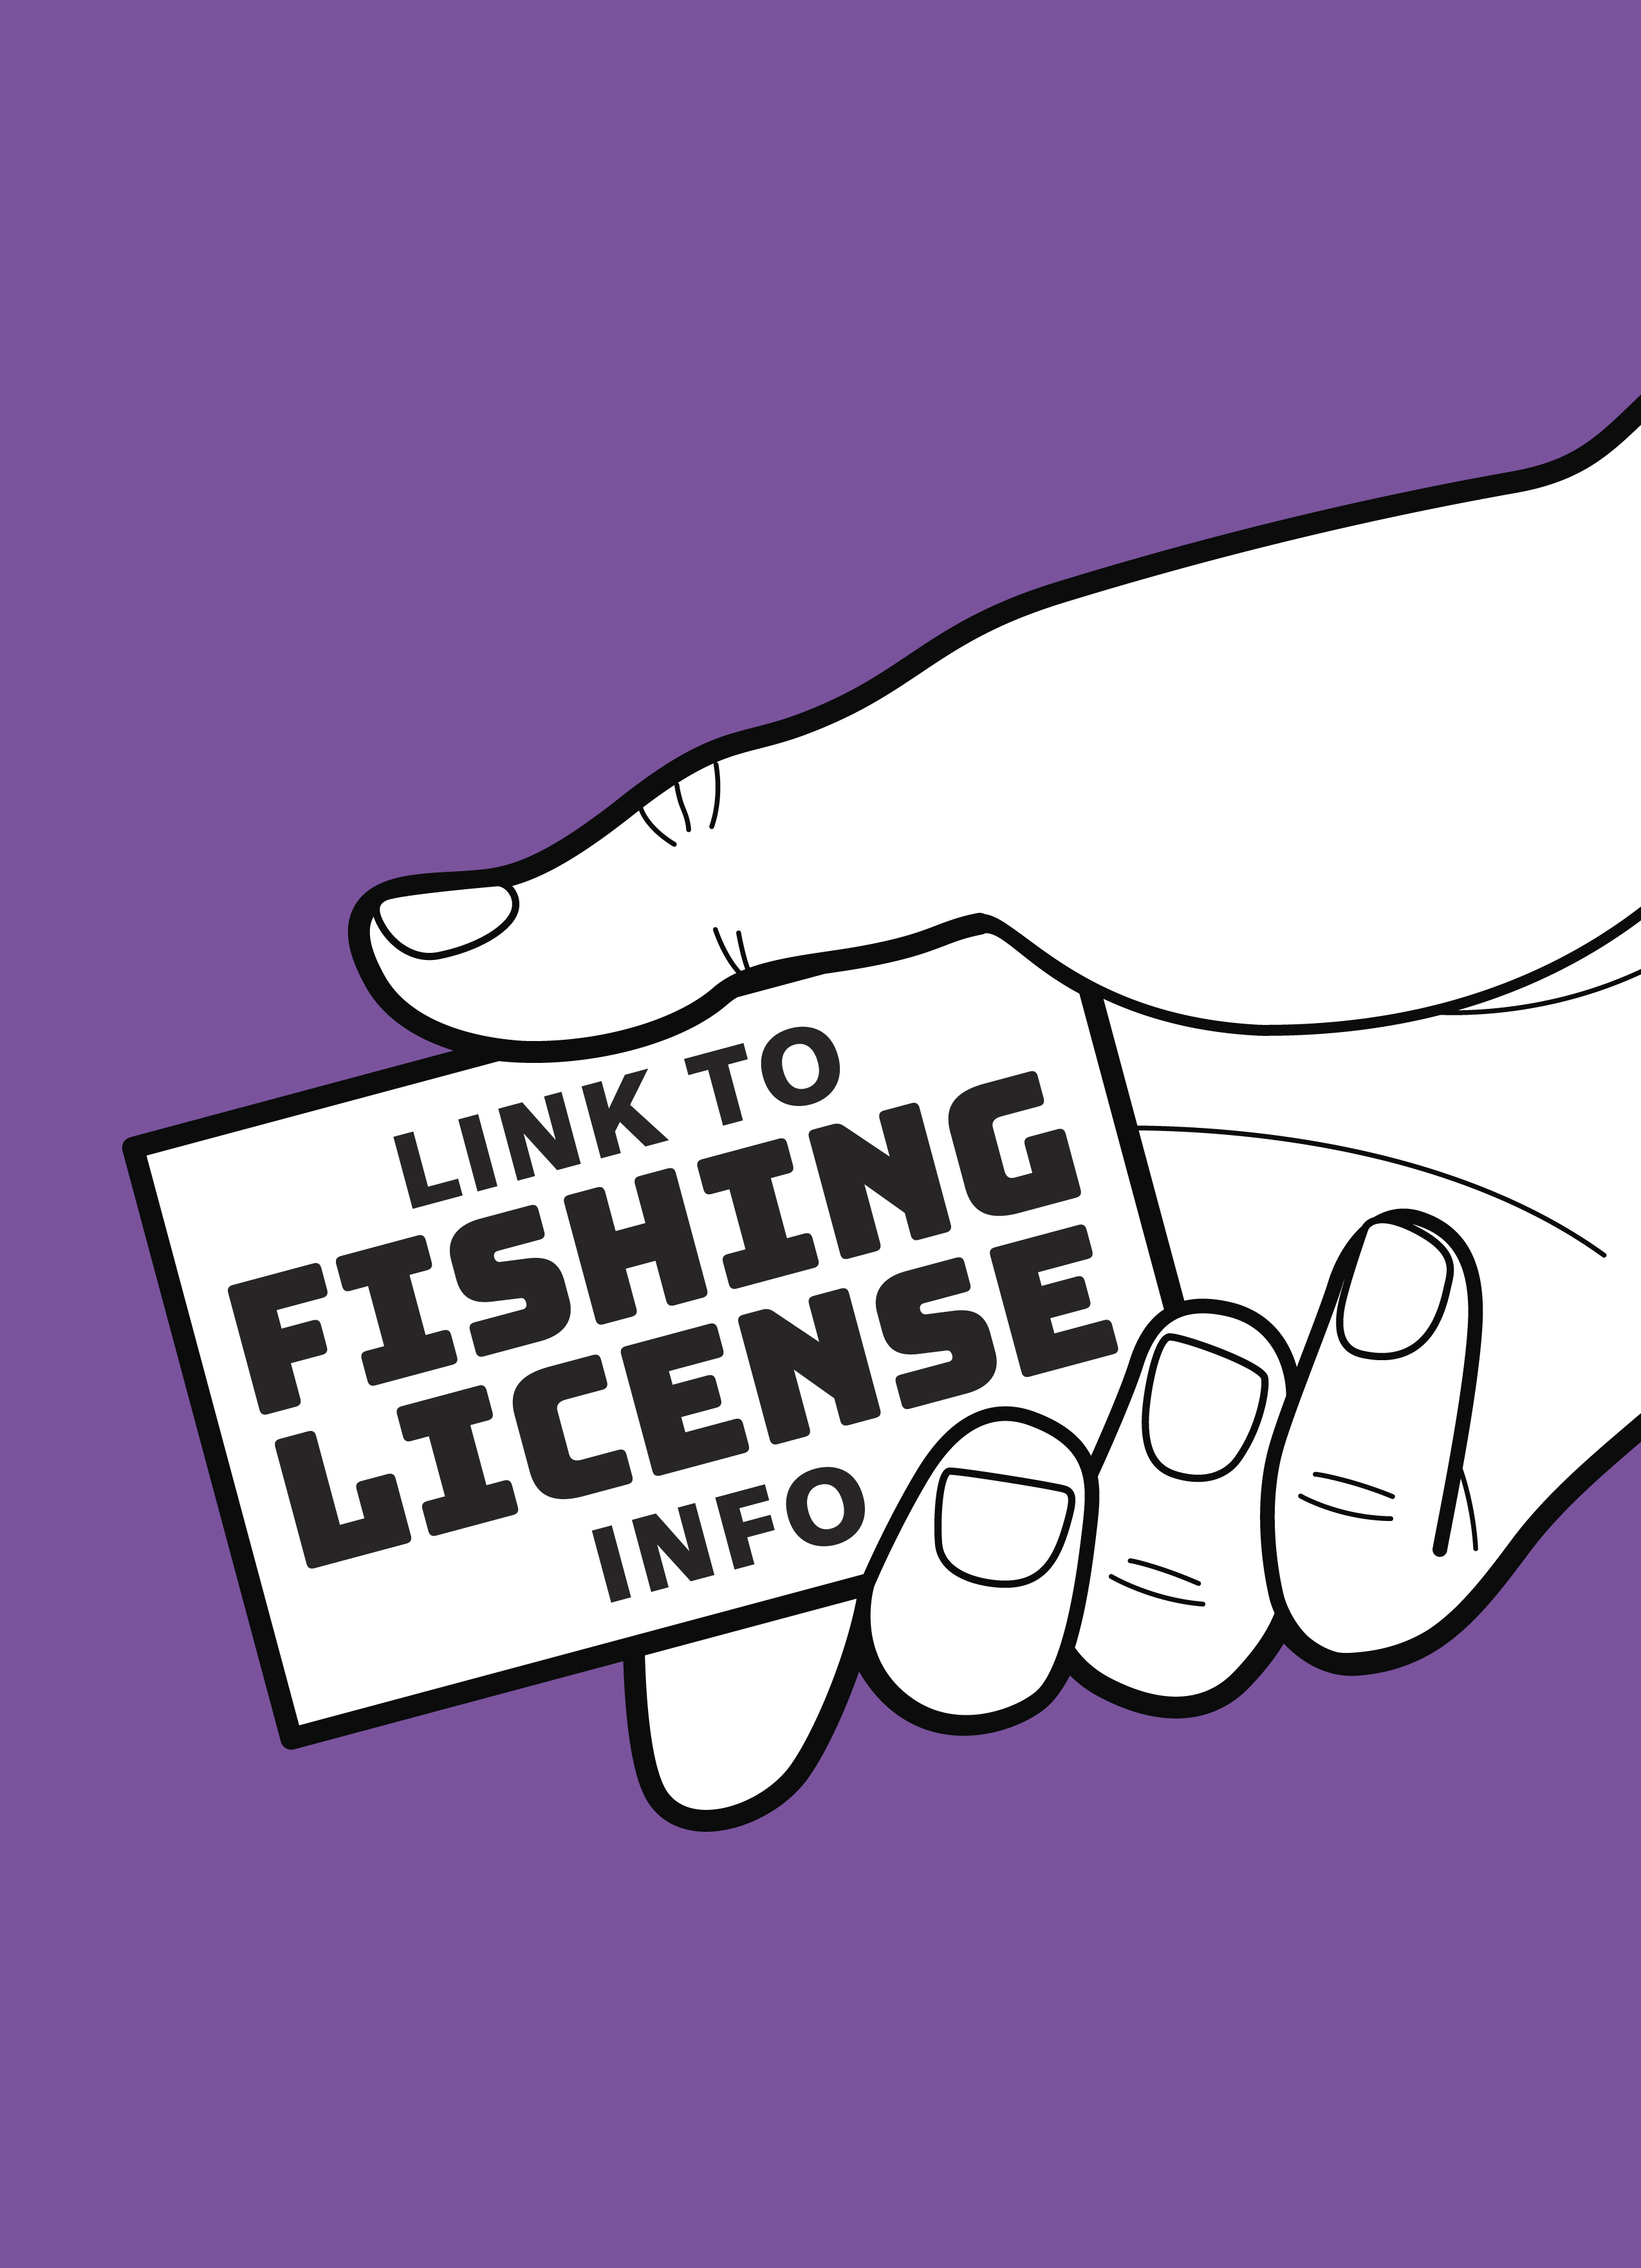 Link to Fishing License Info